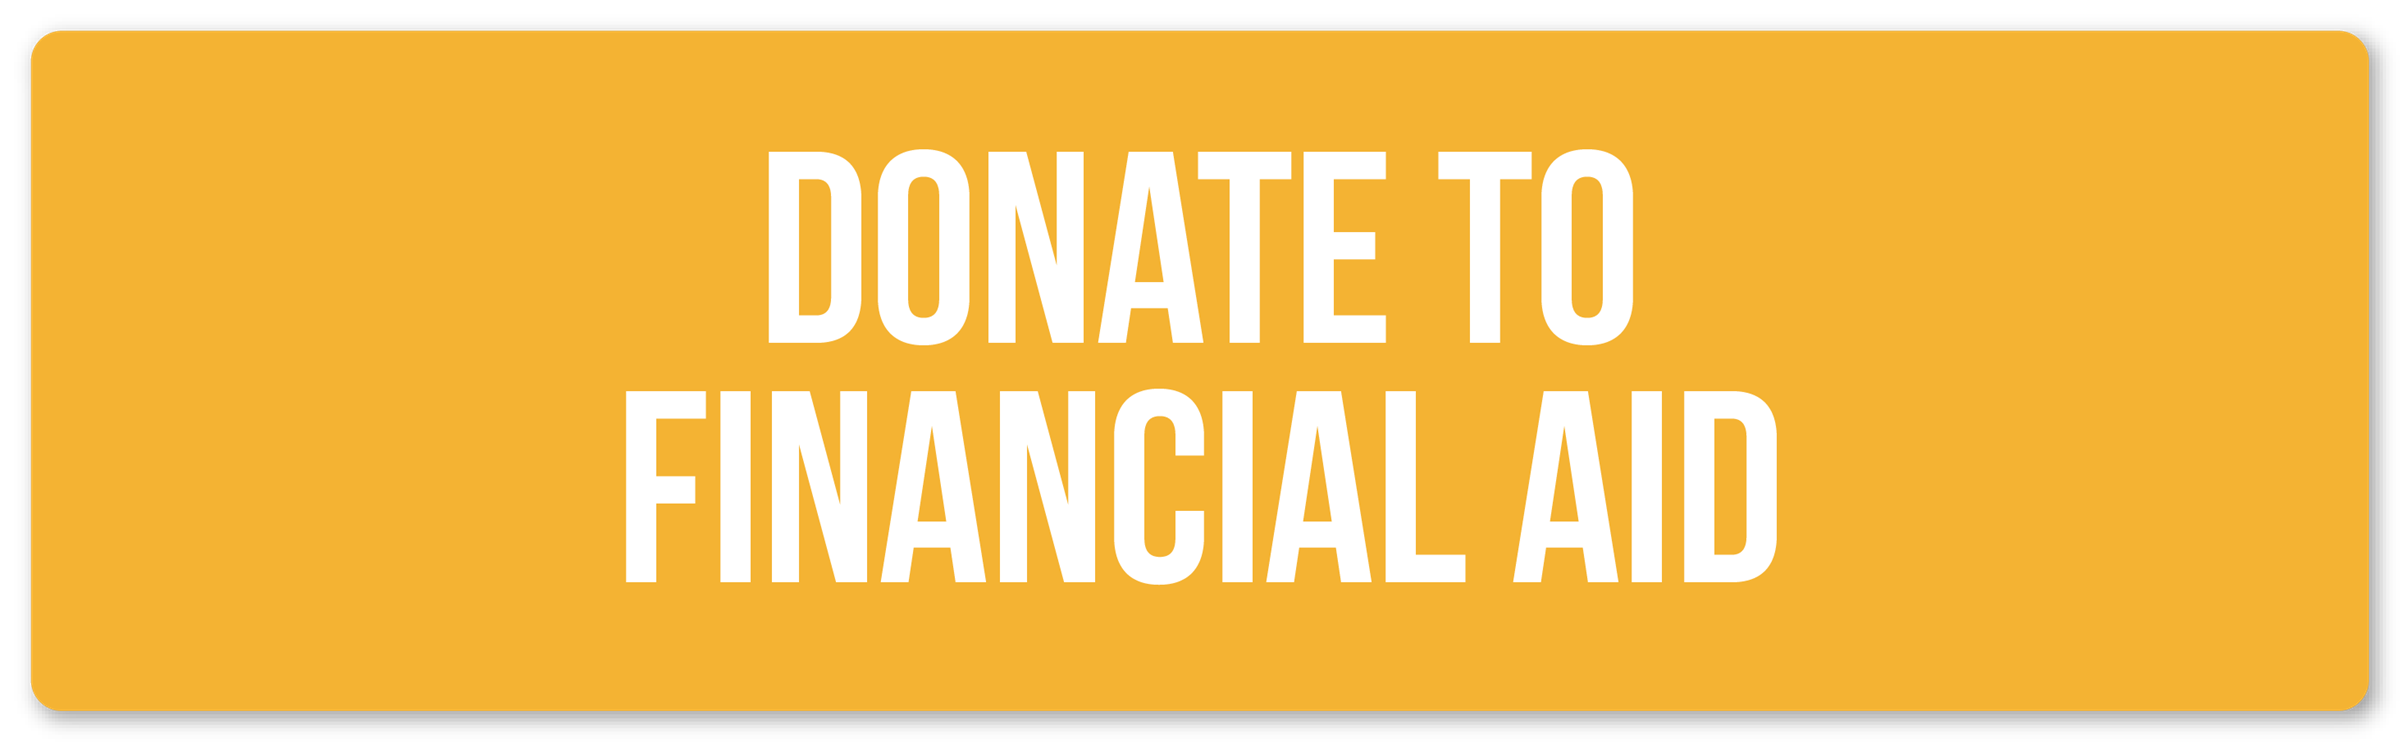 Donate to Financial Aid